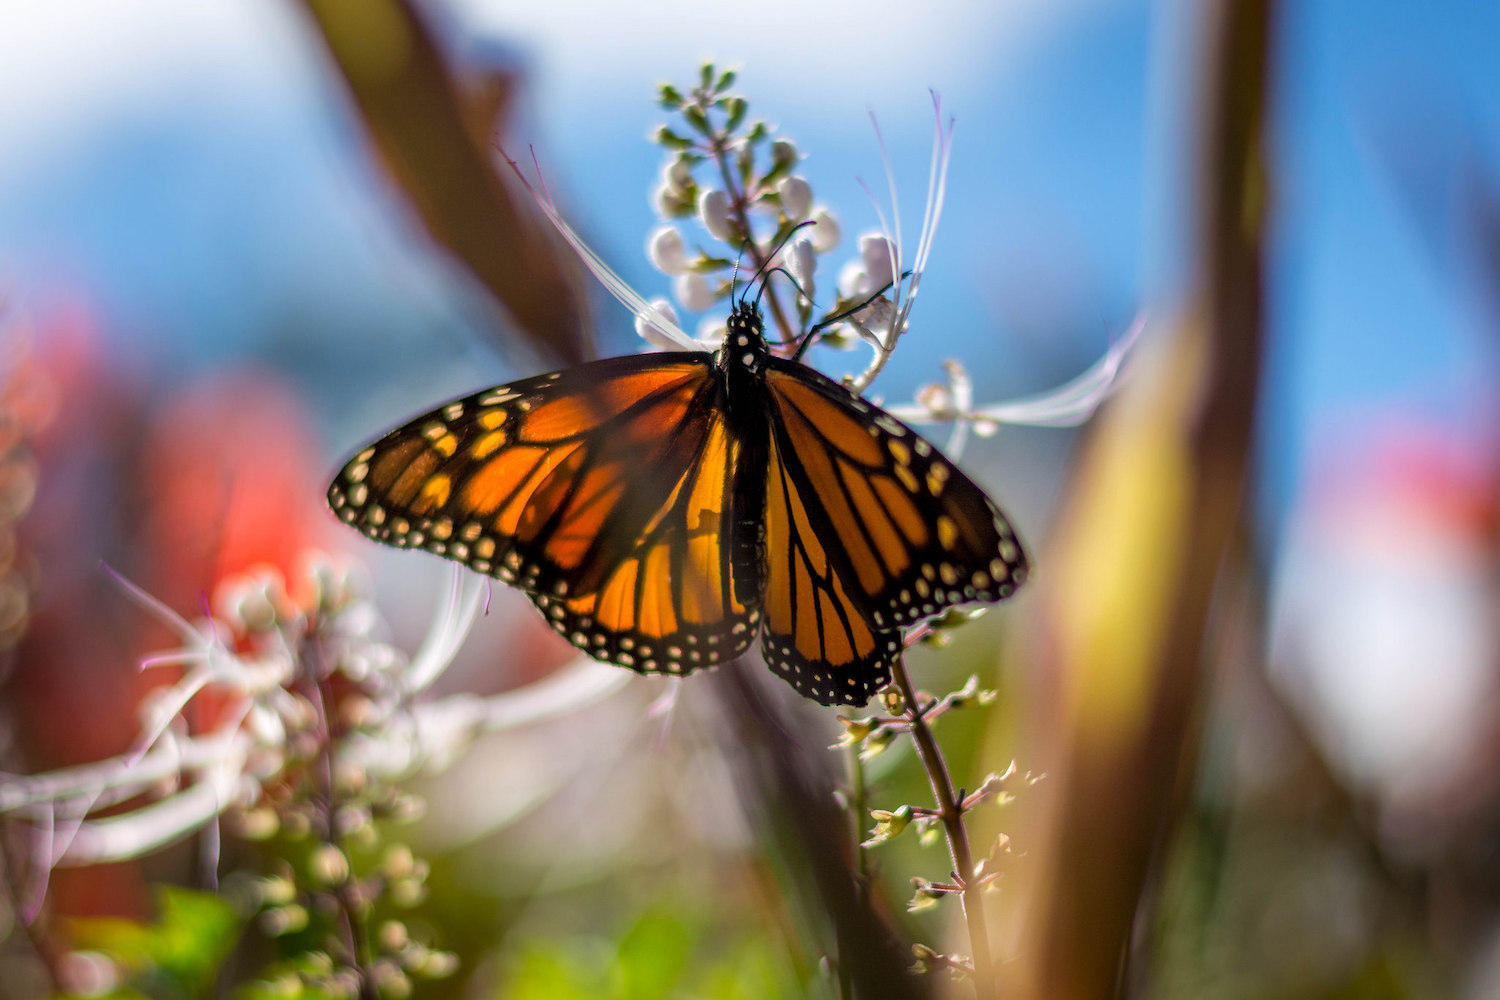 https://i0.wp.com/digital-photography-school.com/wp-content/uploads/2019/02/changing-perspective-butterfly.jpg?resize=1500%2C1000&ssl=1